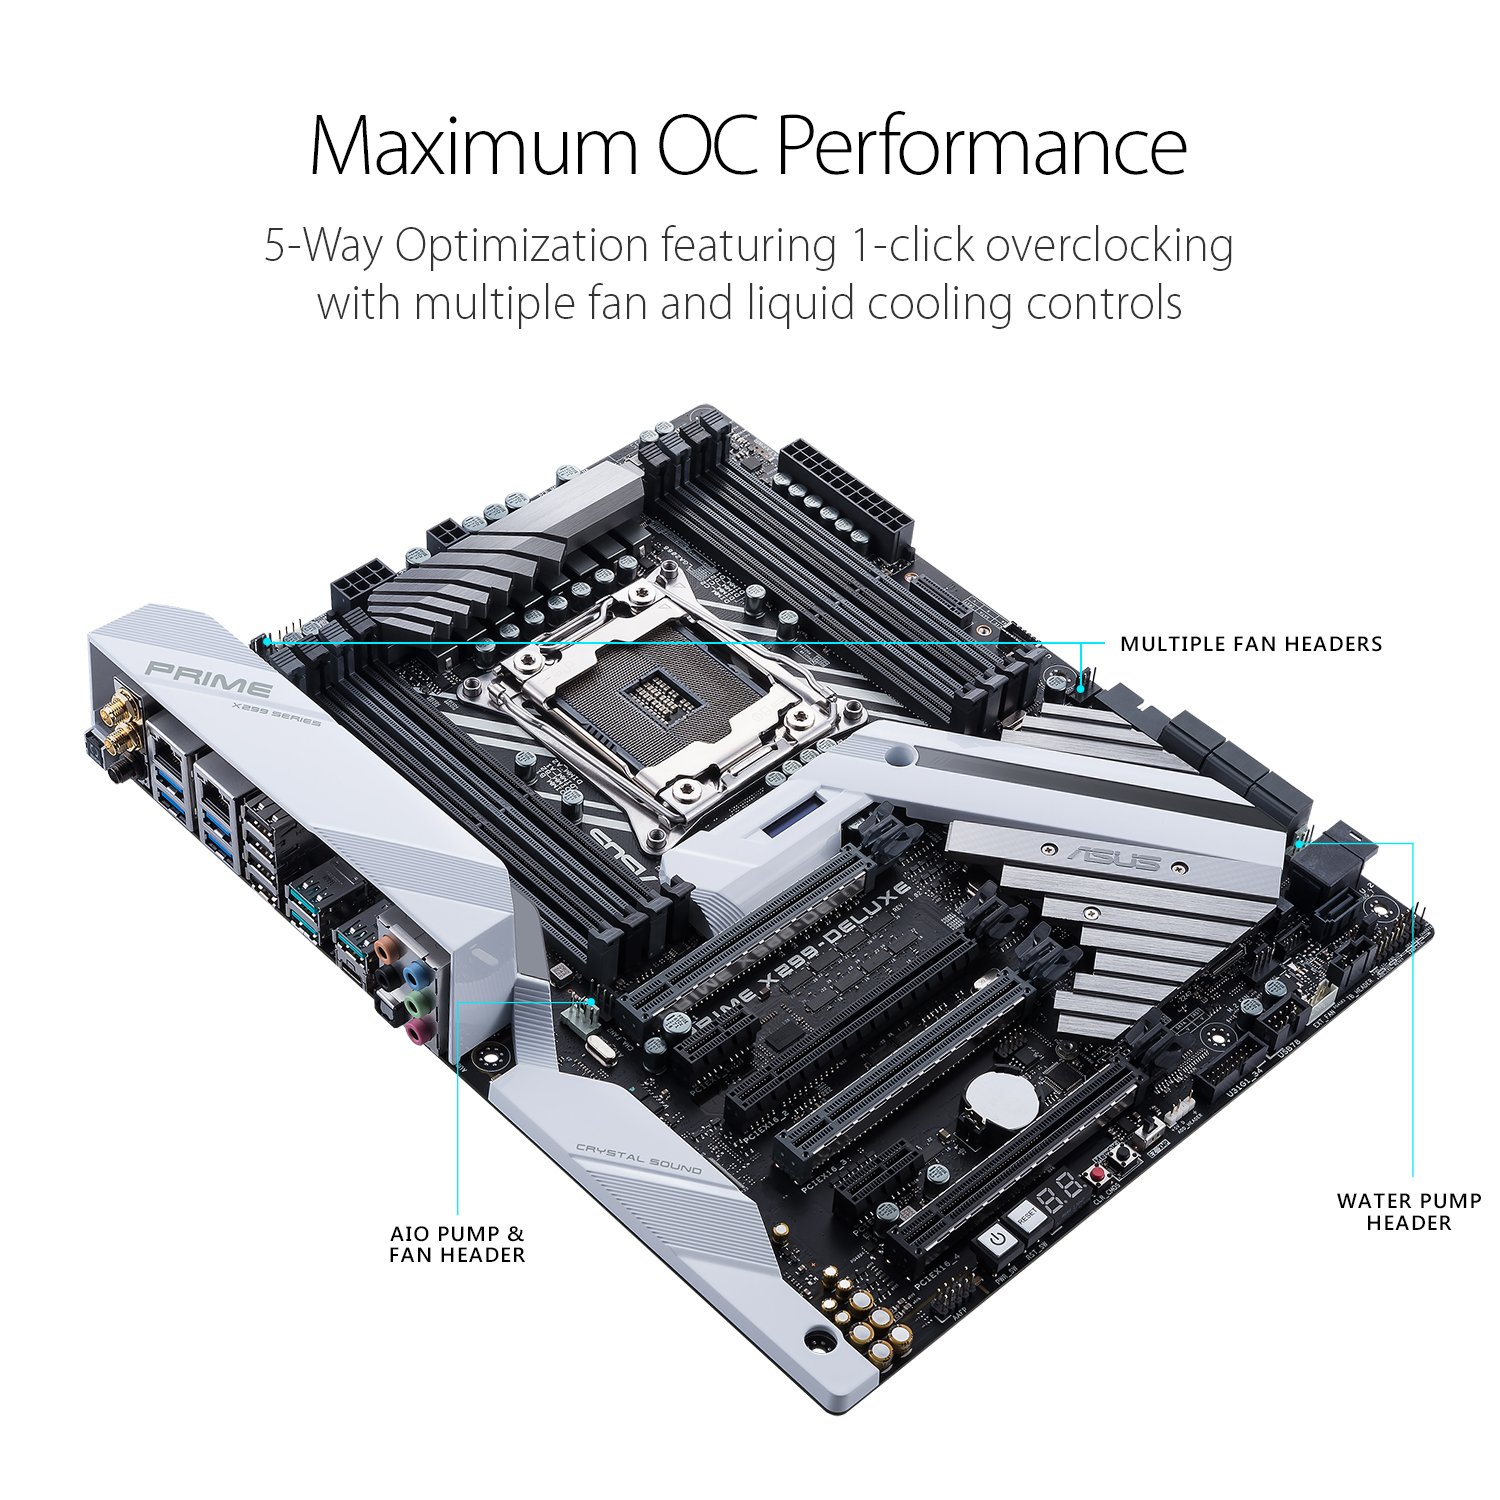 Asus Prime X299 Deluxe Lga2066 Ddr4 M2 U2 Thunderbolt 3 Usb 31 X Reverse Camera Wiring Overclockers Uk Forums 299 Atx Motherboard With Dual Gigabit Lan And 80211ad Wifi For Intel Coretm Series Processors Computers Accessories